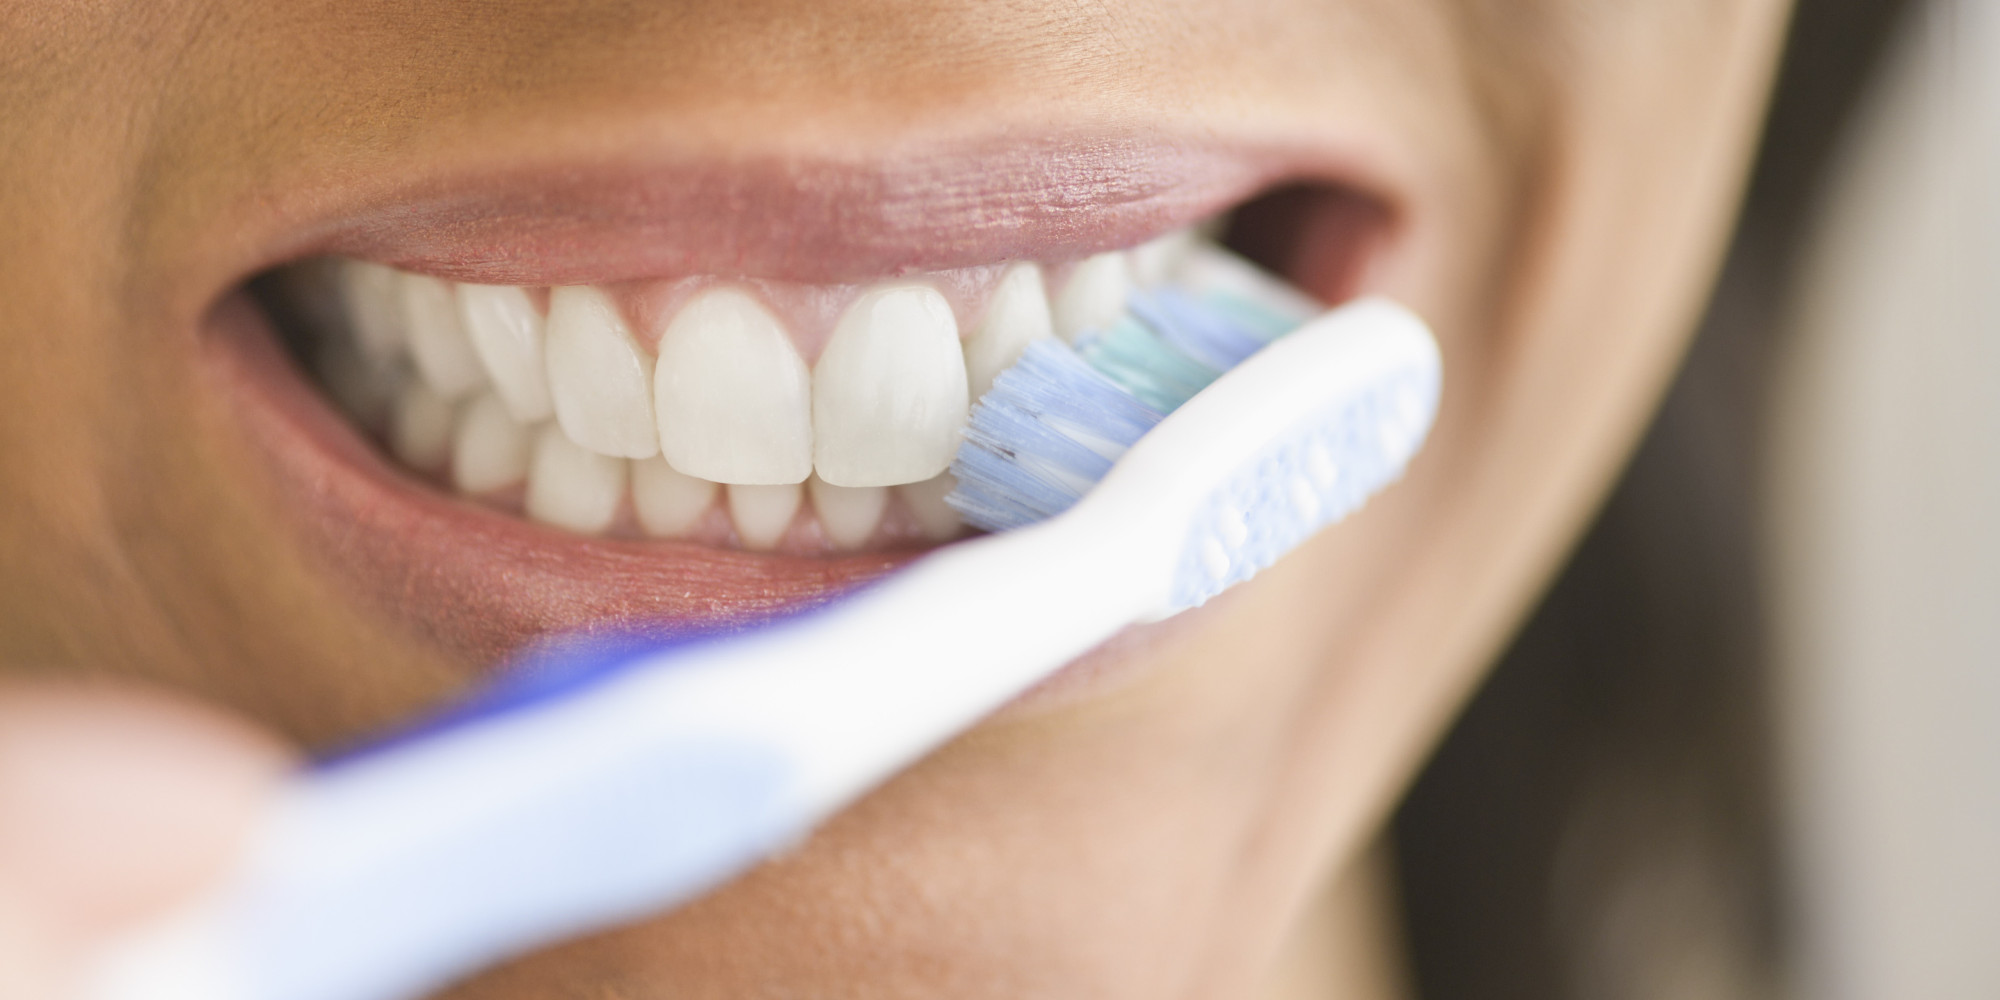 Tooth-whitening toothpaste